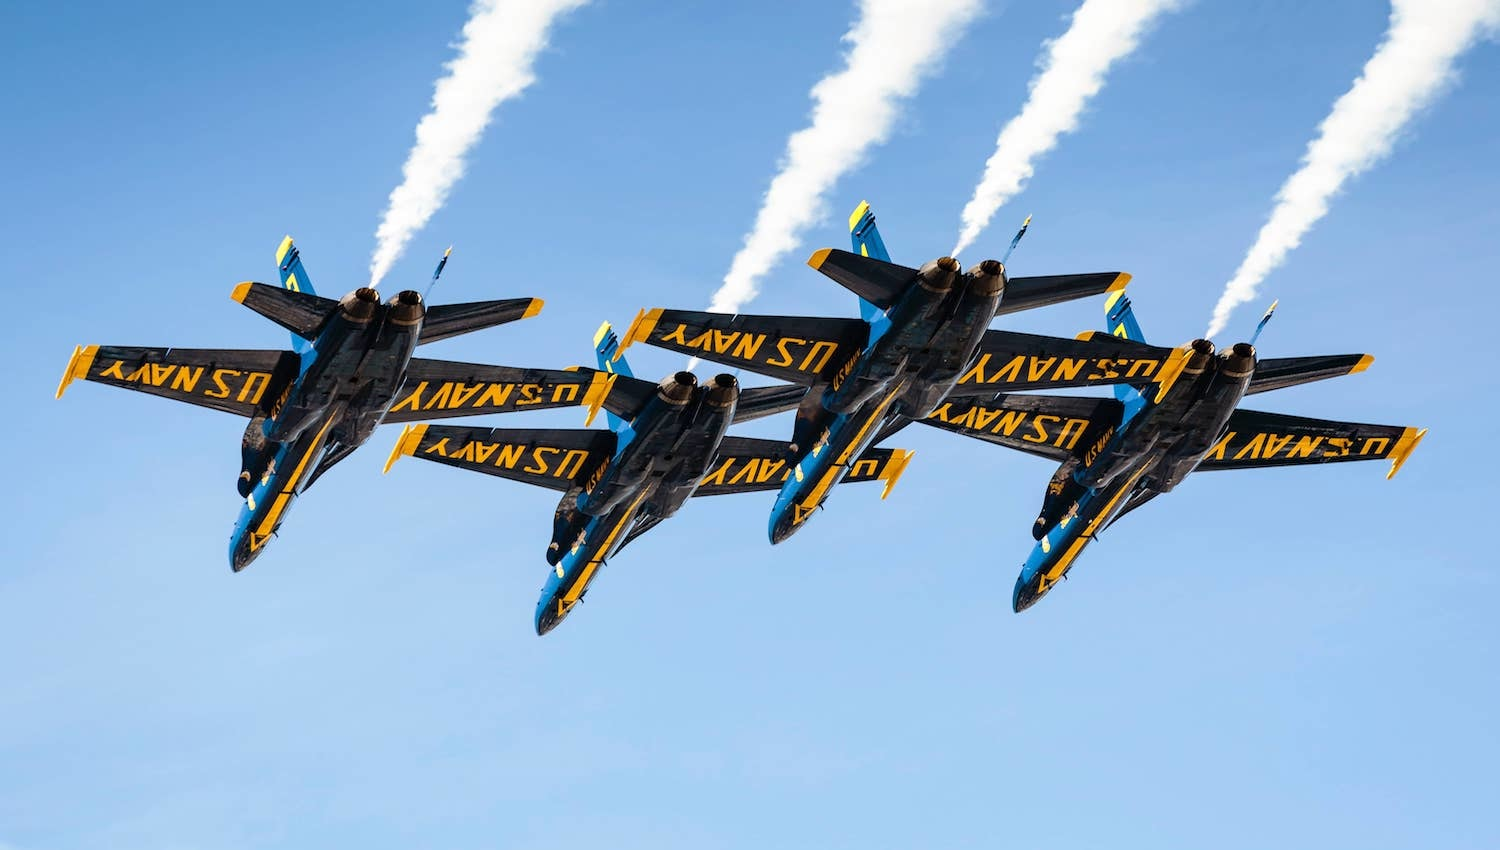 U.S. Navy planes fly in unison